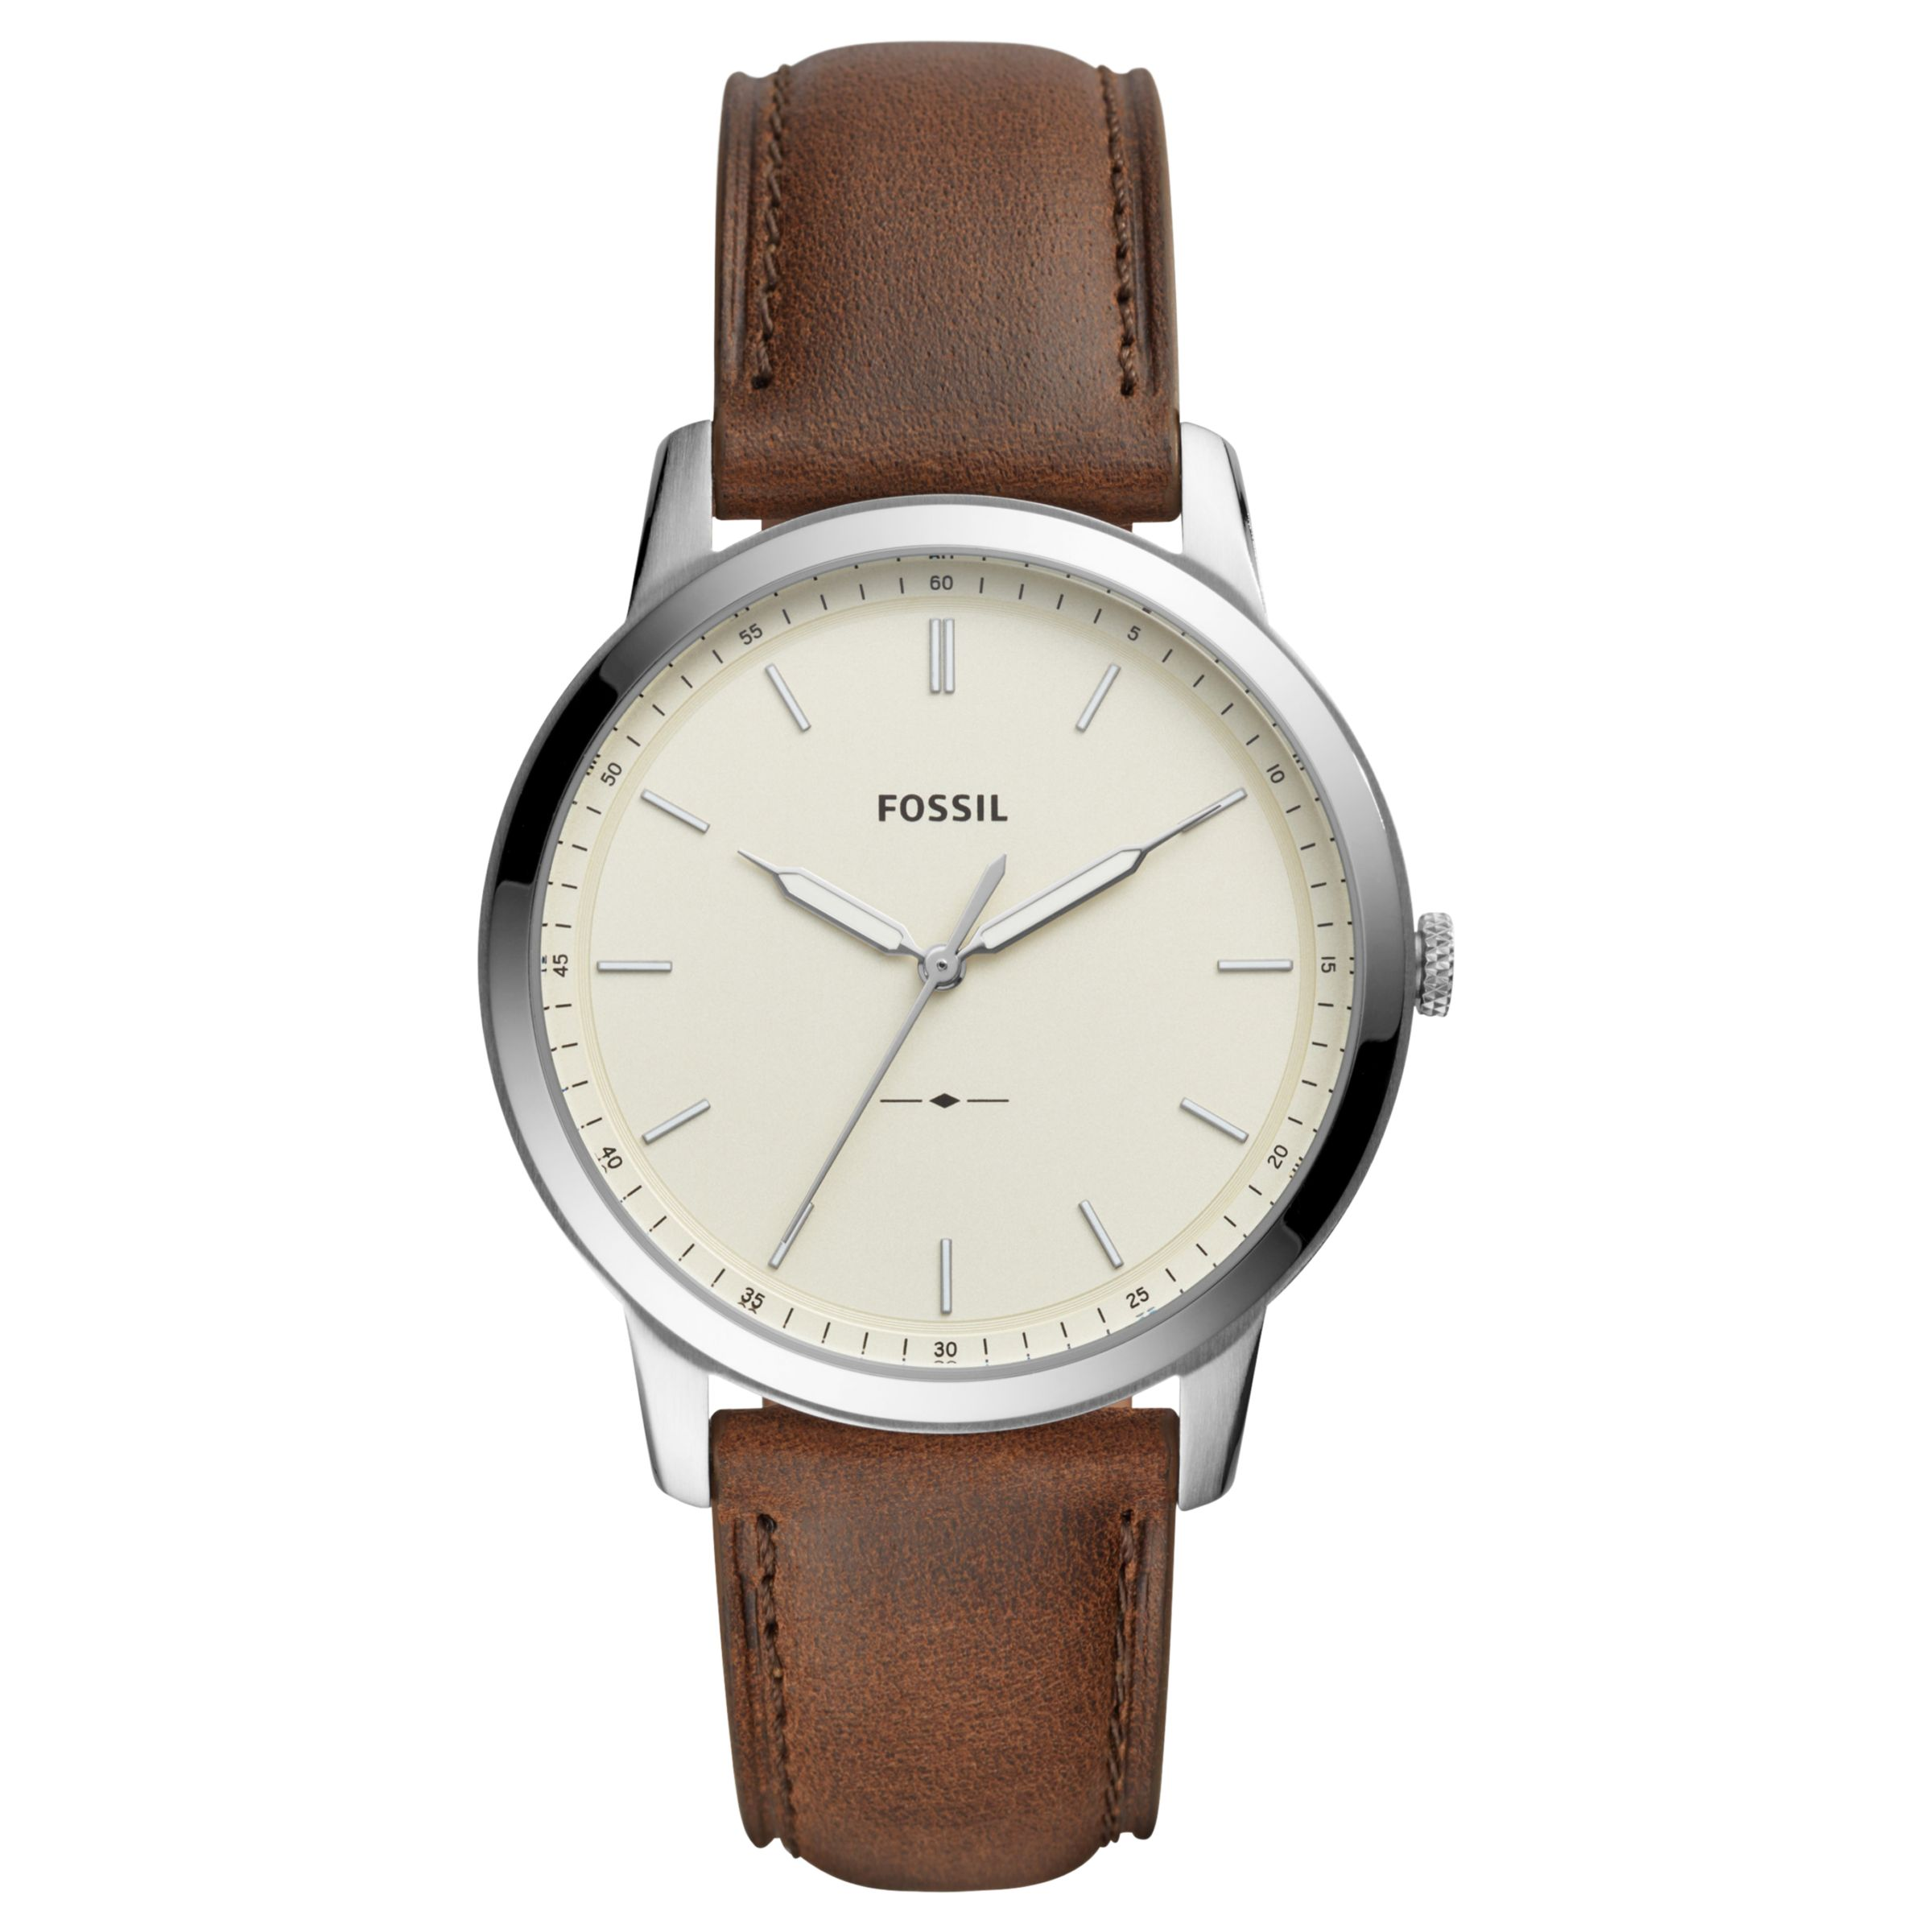 Fossil Fossil Men's Minimalist Leather Strap Watch, Brown/White FS5439